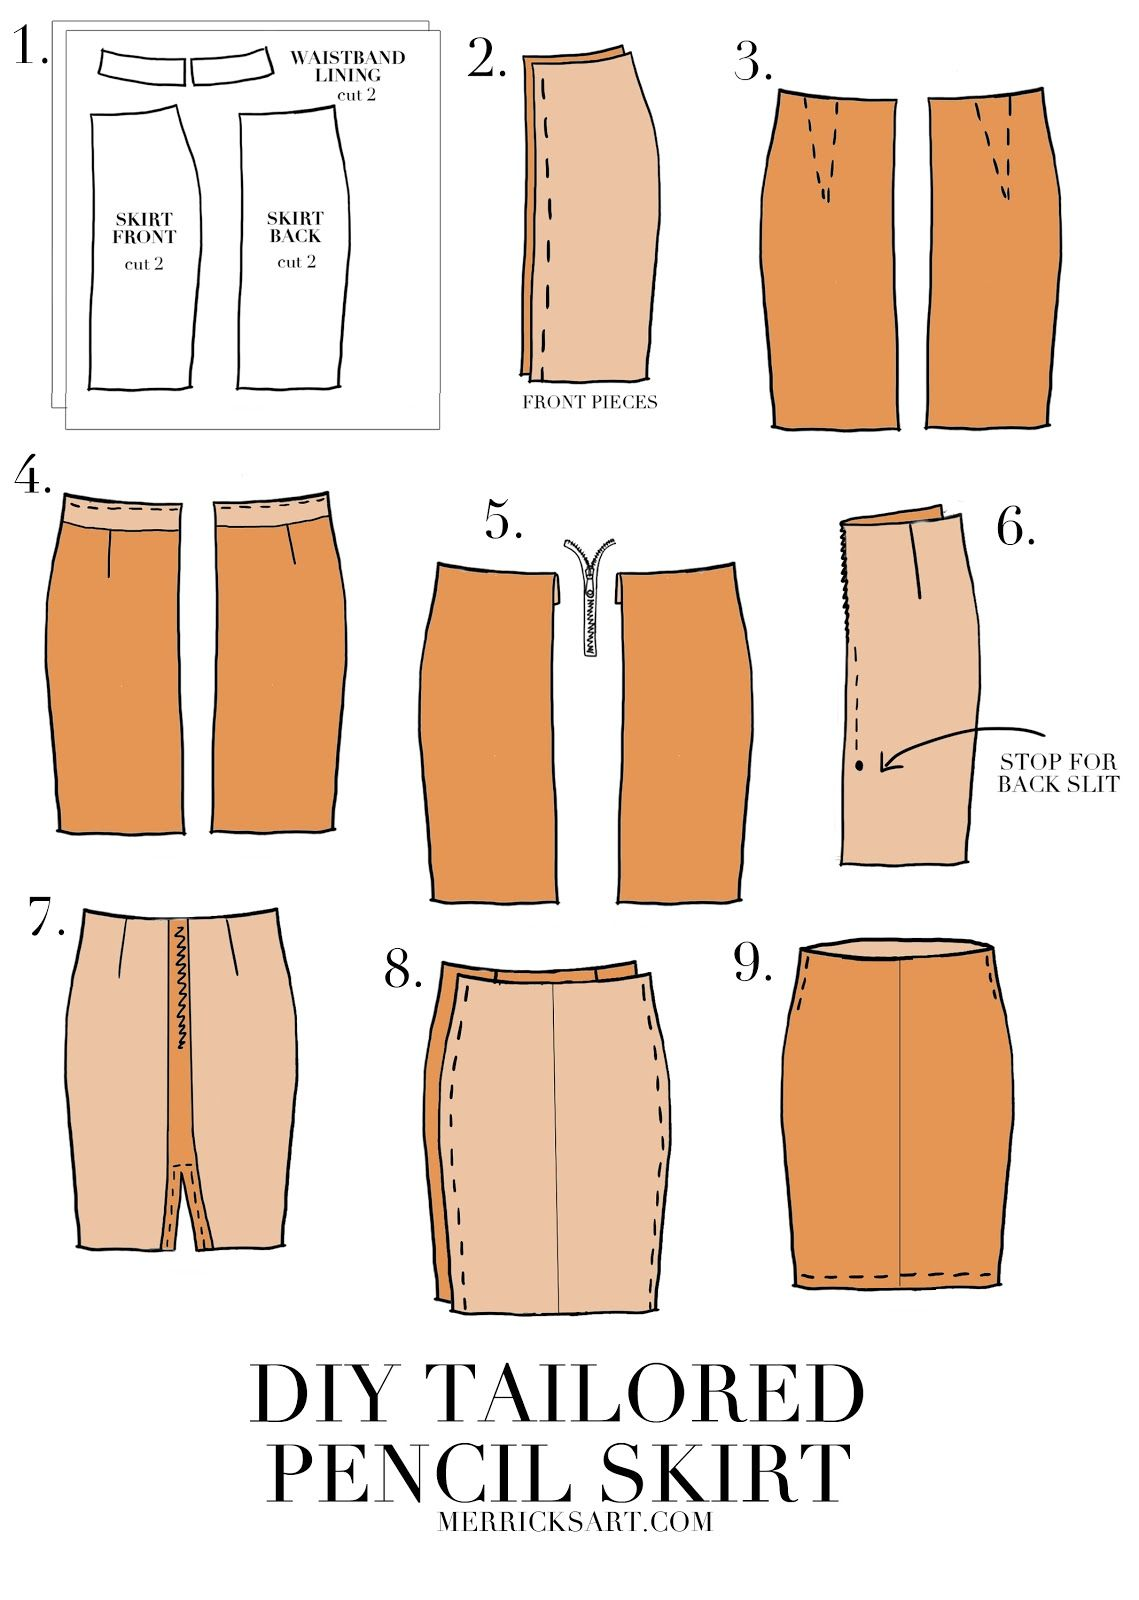 How to Sew a Pencil Skirt images